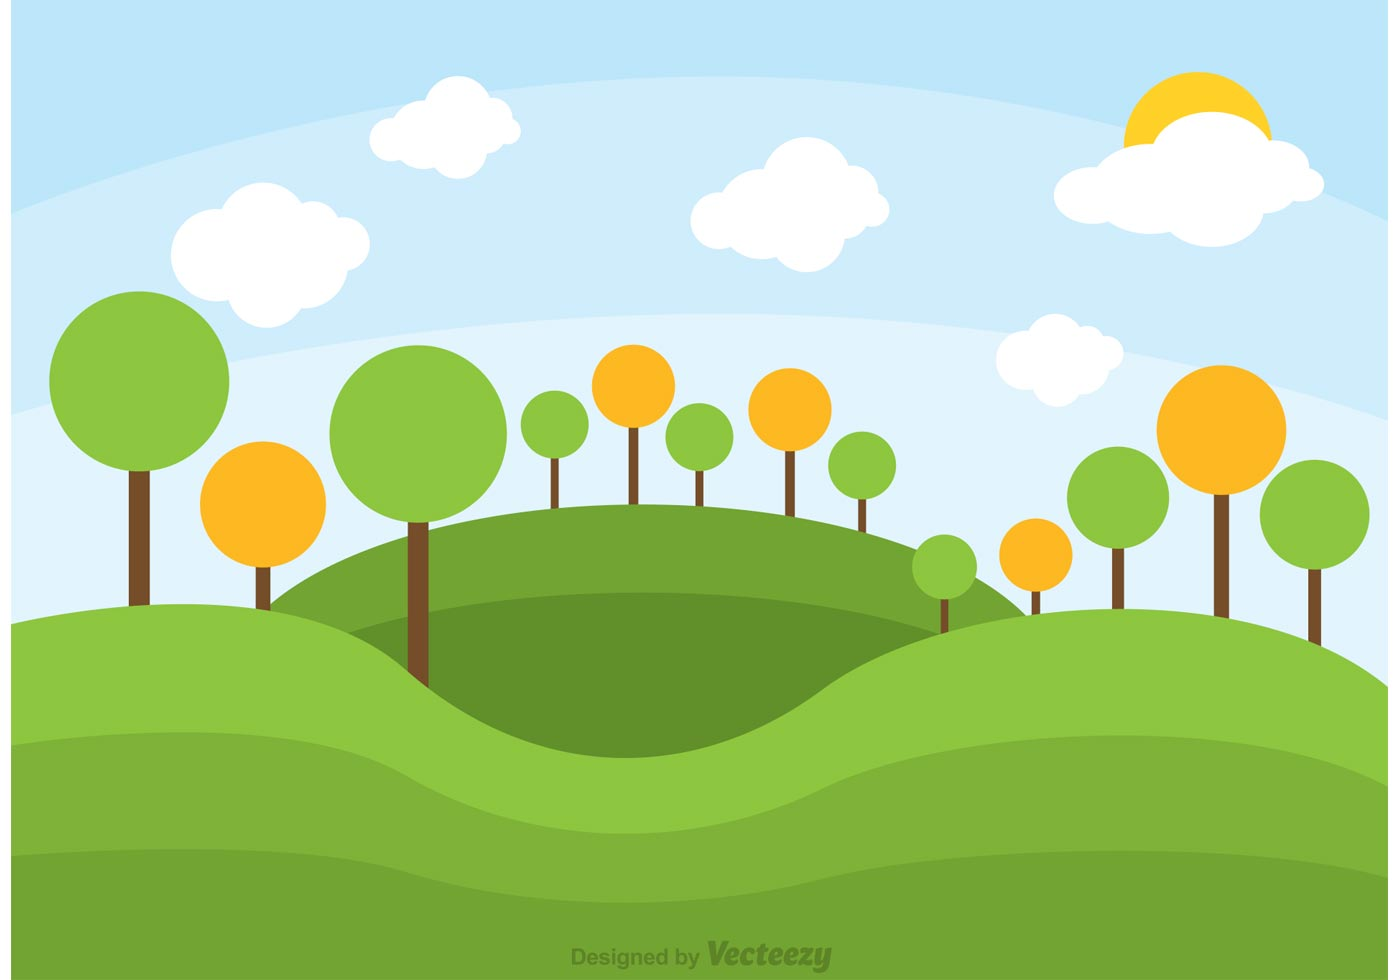 Animated Christmas Tree Wallpaper Rolling Hills Landscape Vector Download Free Vector Art